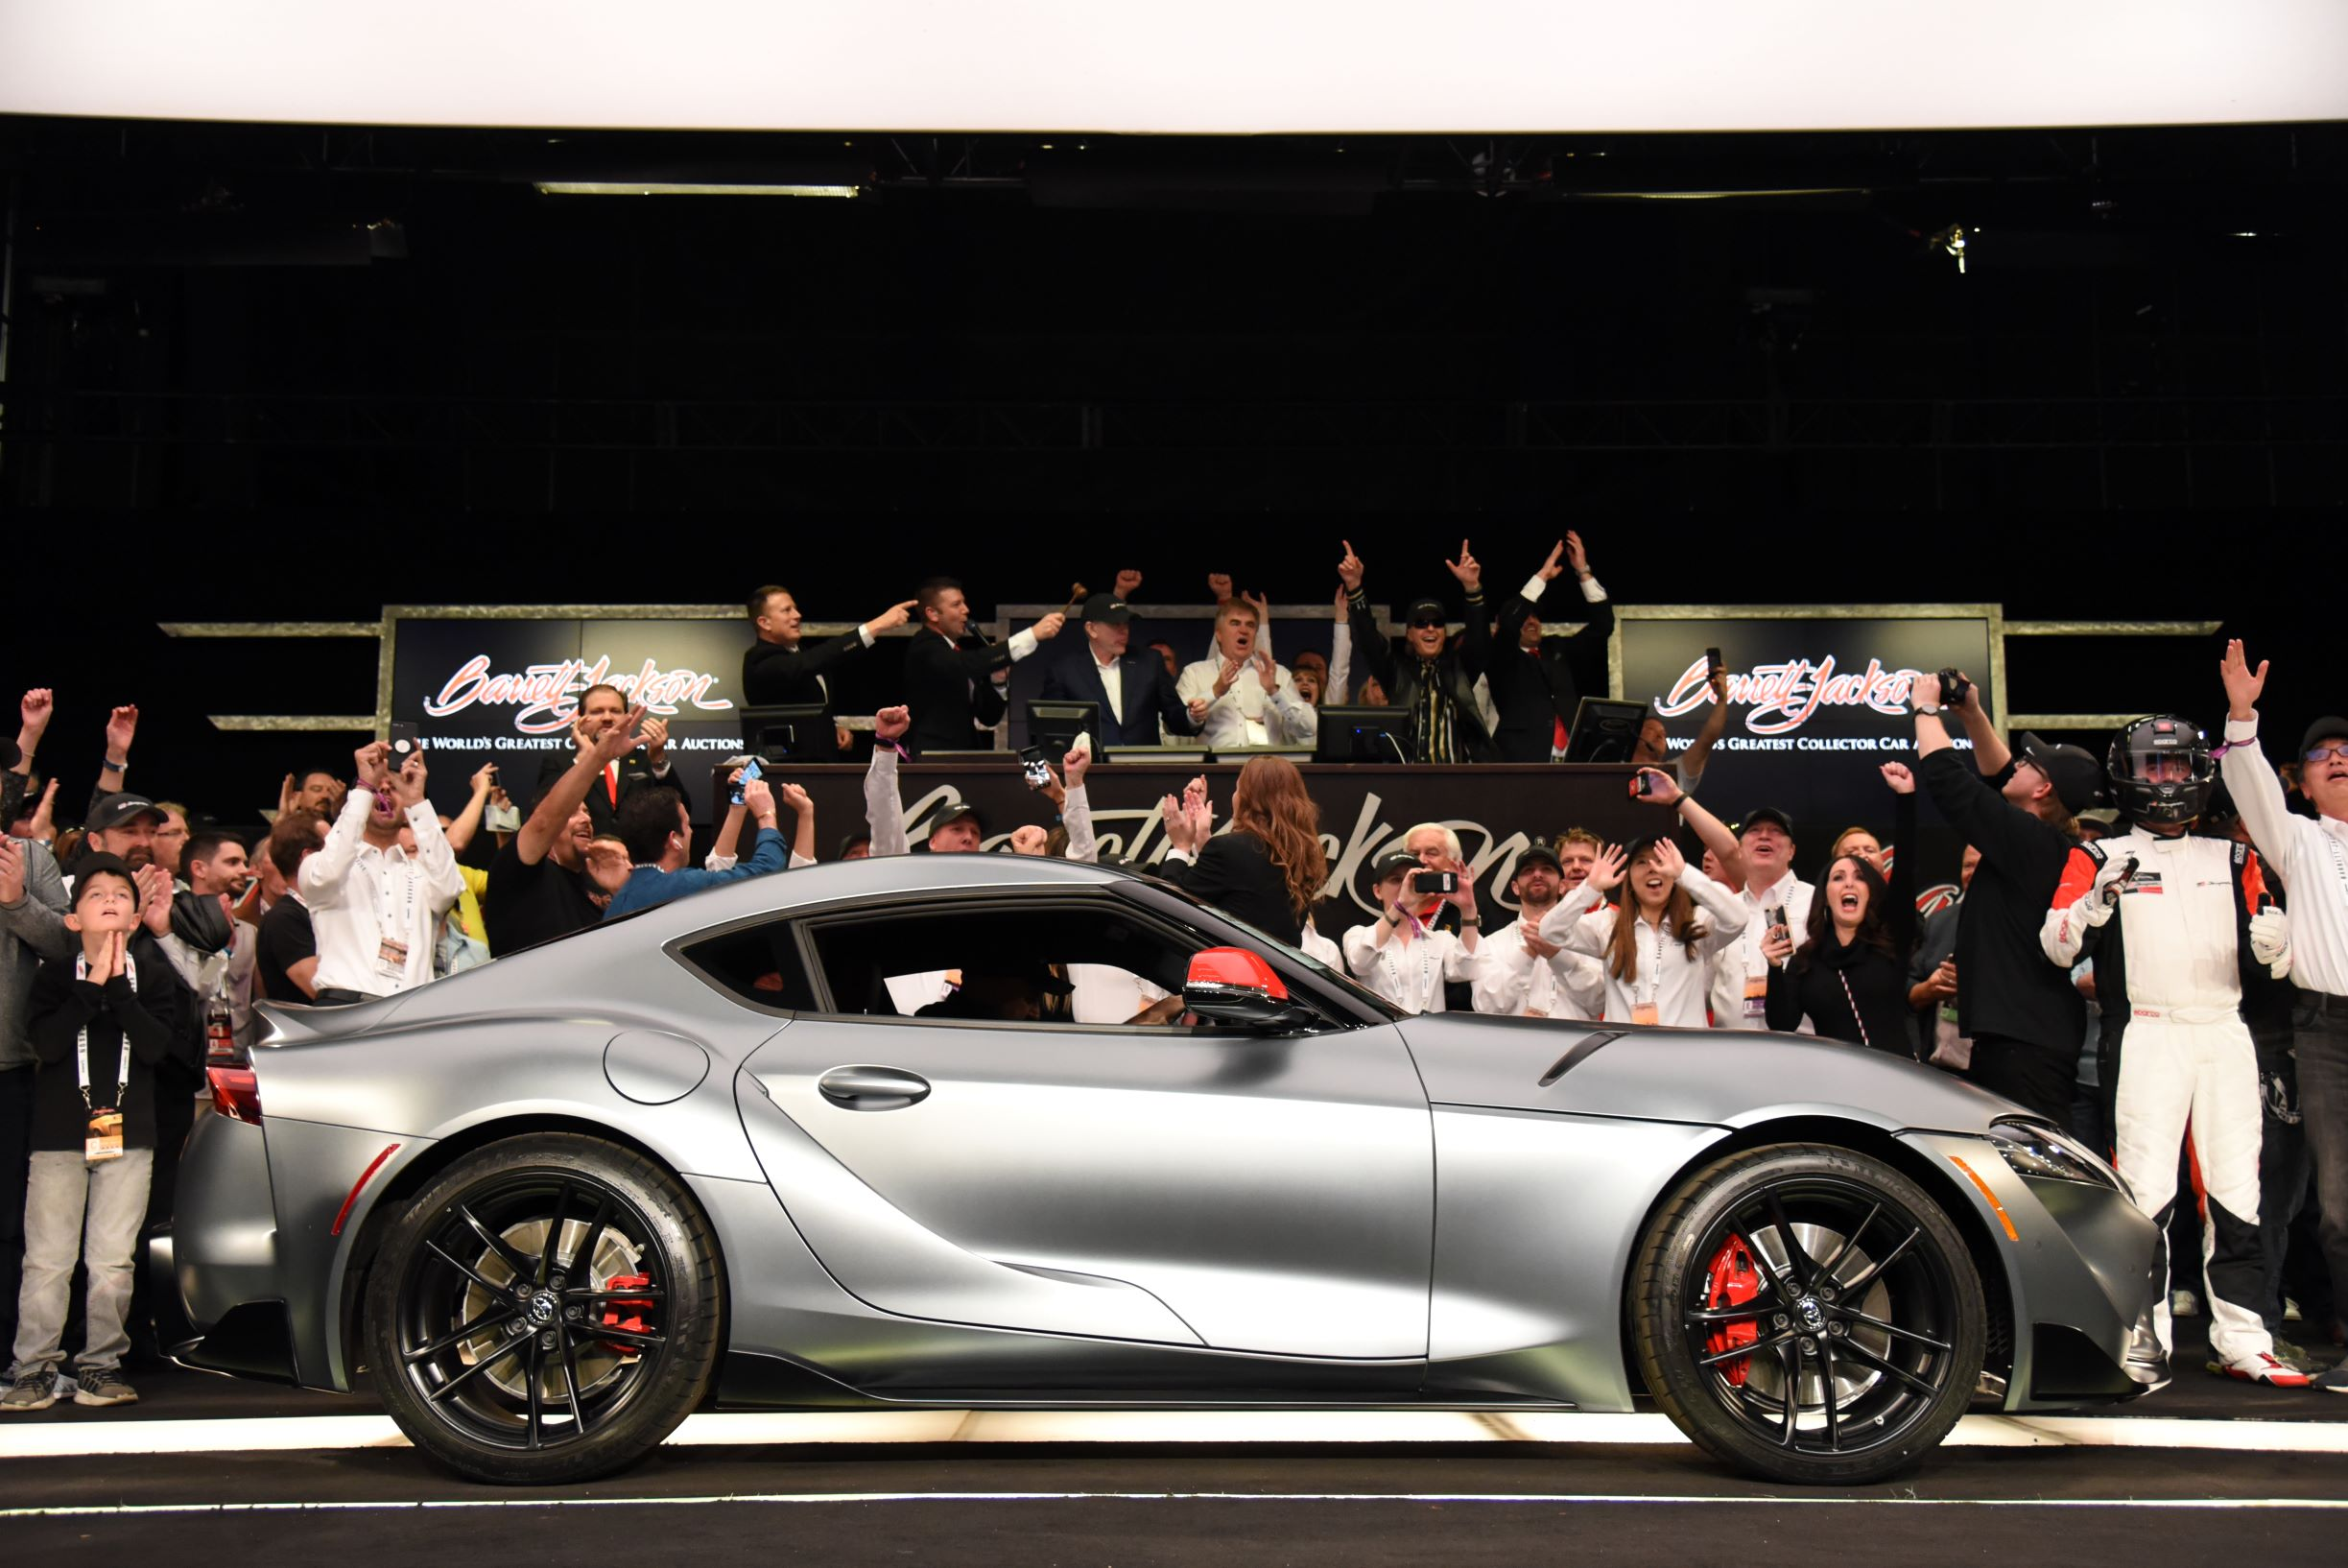 2020 Toyota Supra VIN 20201 (Lot #3010), which raised $2.1 million to benefit the American Heart Association and The Bob Woodruff Foundationk - Barrett-Jackson Scottsdale